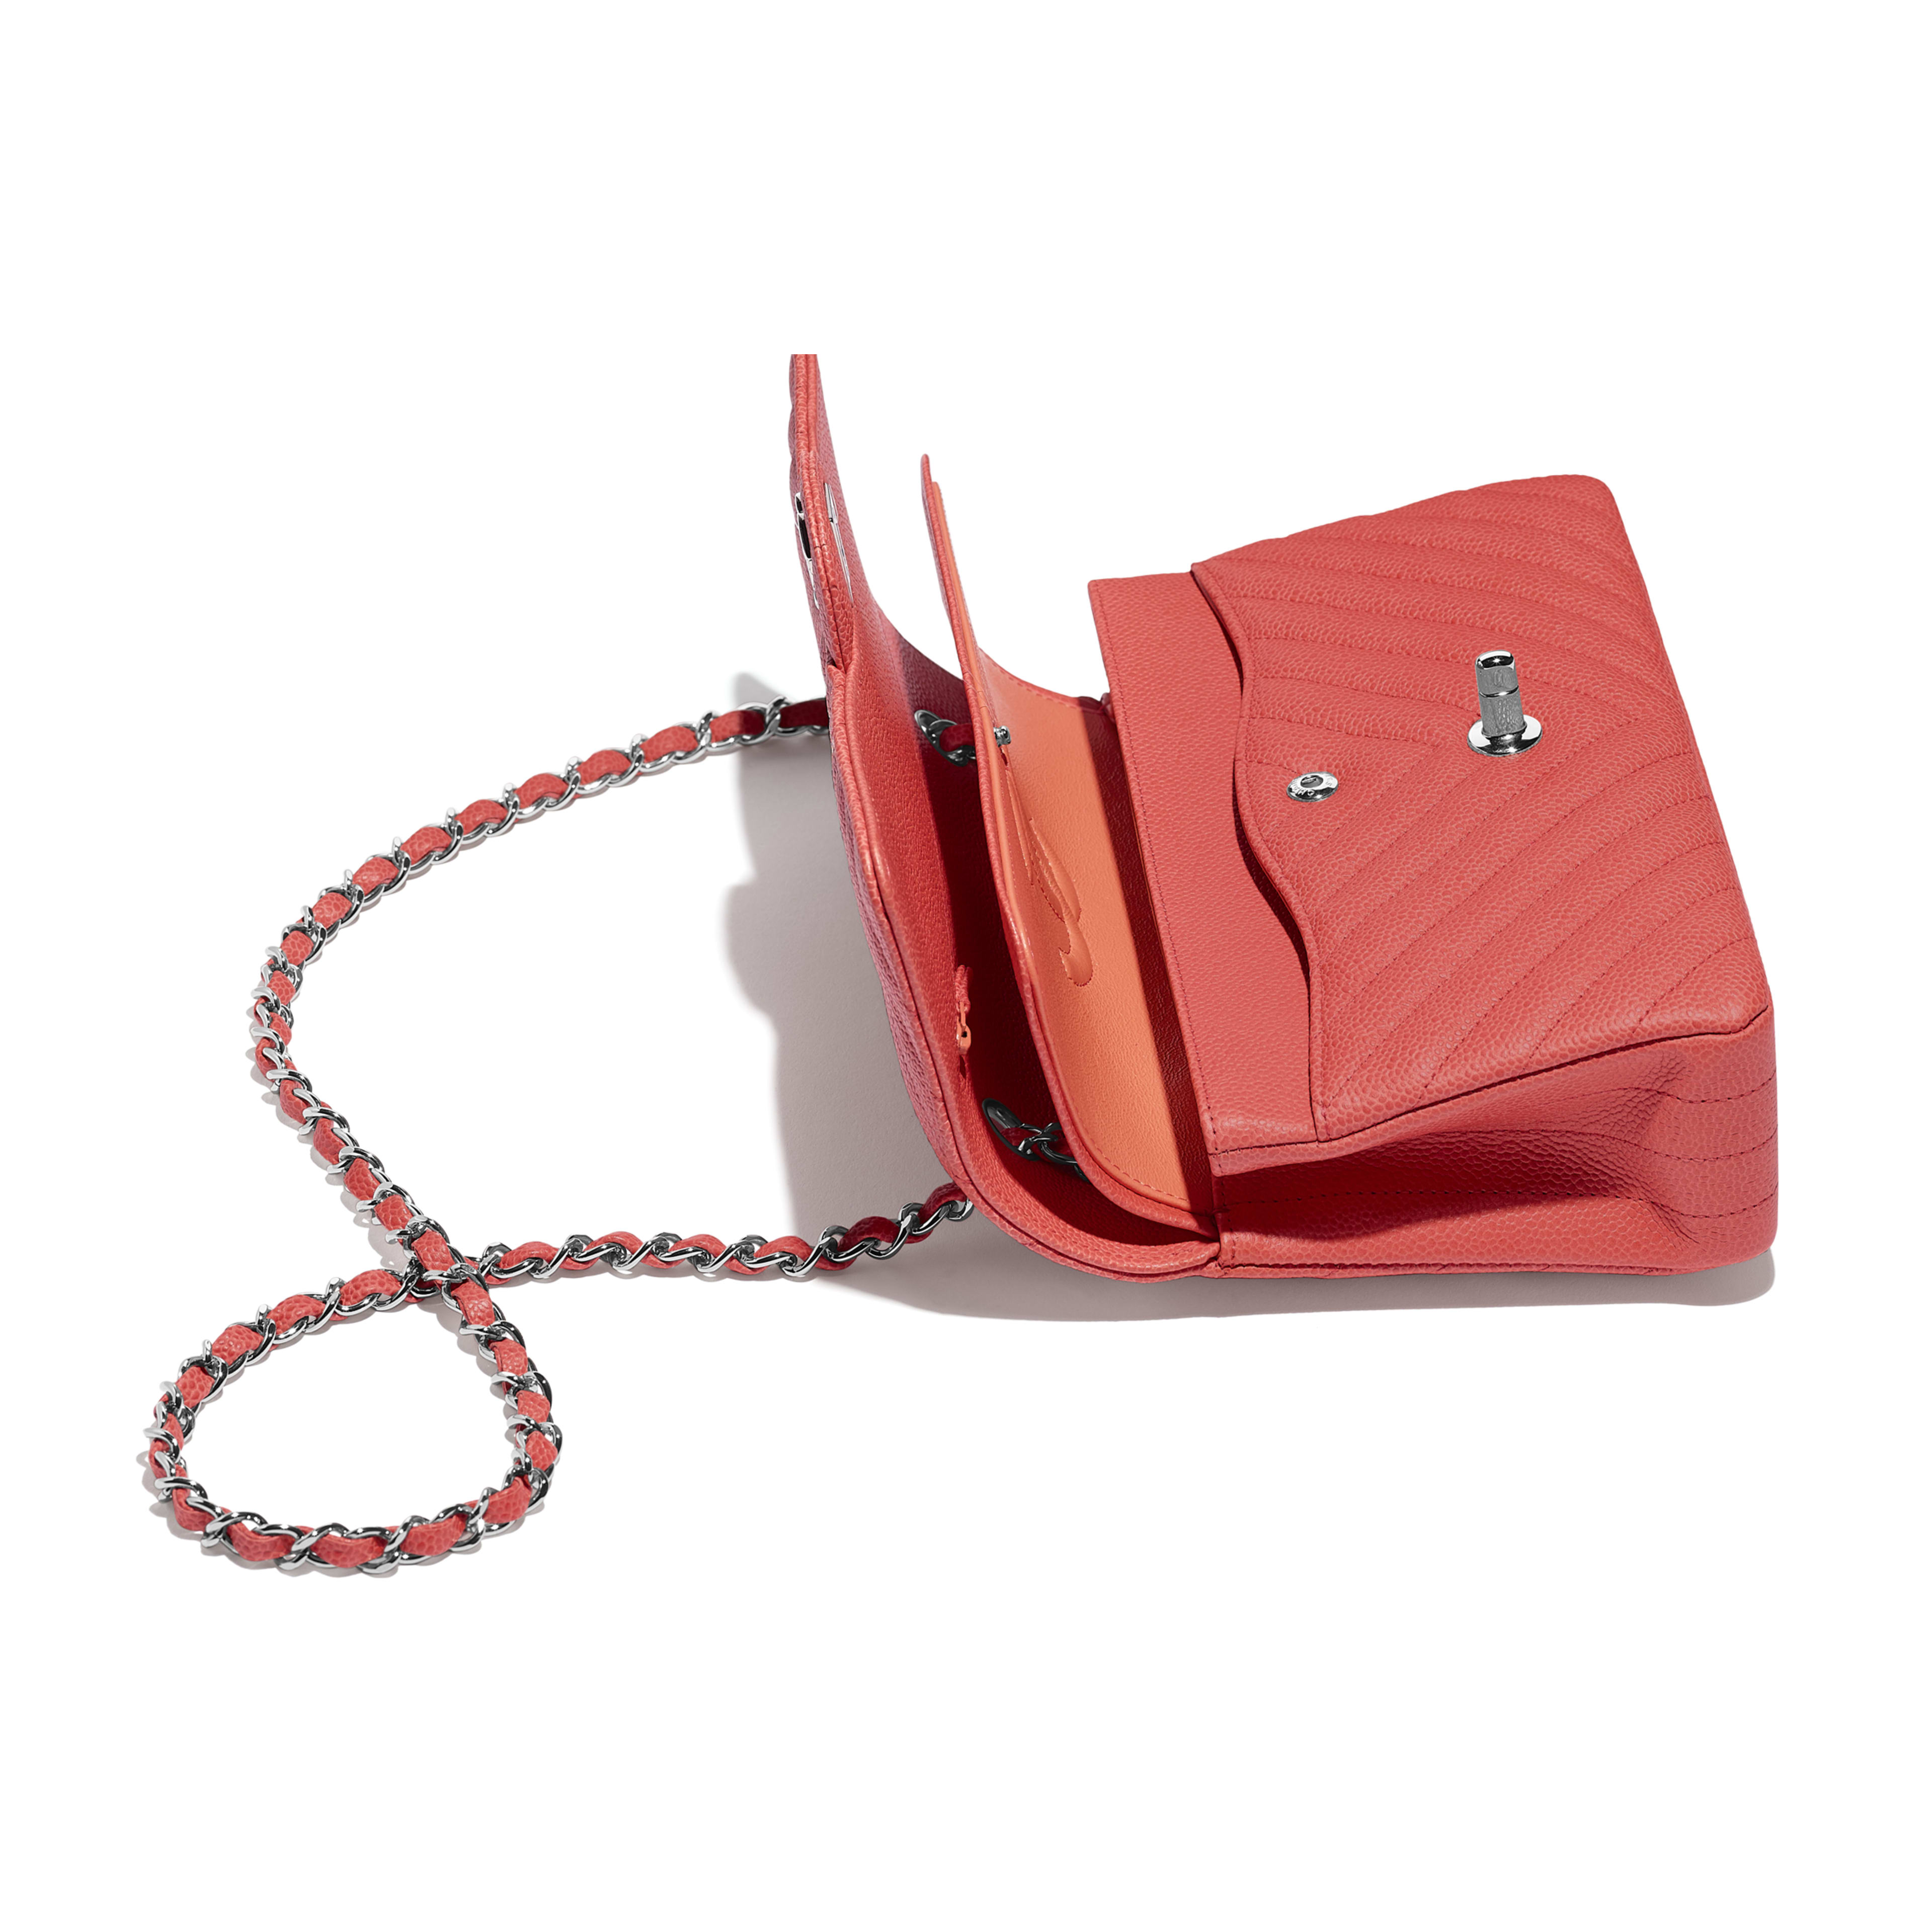 Classic Handbag - Coral - Grained Calfskin & Silver-Tone Metal - Other view - see full sized version